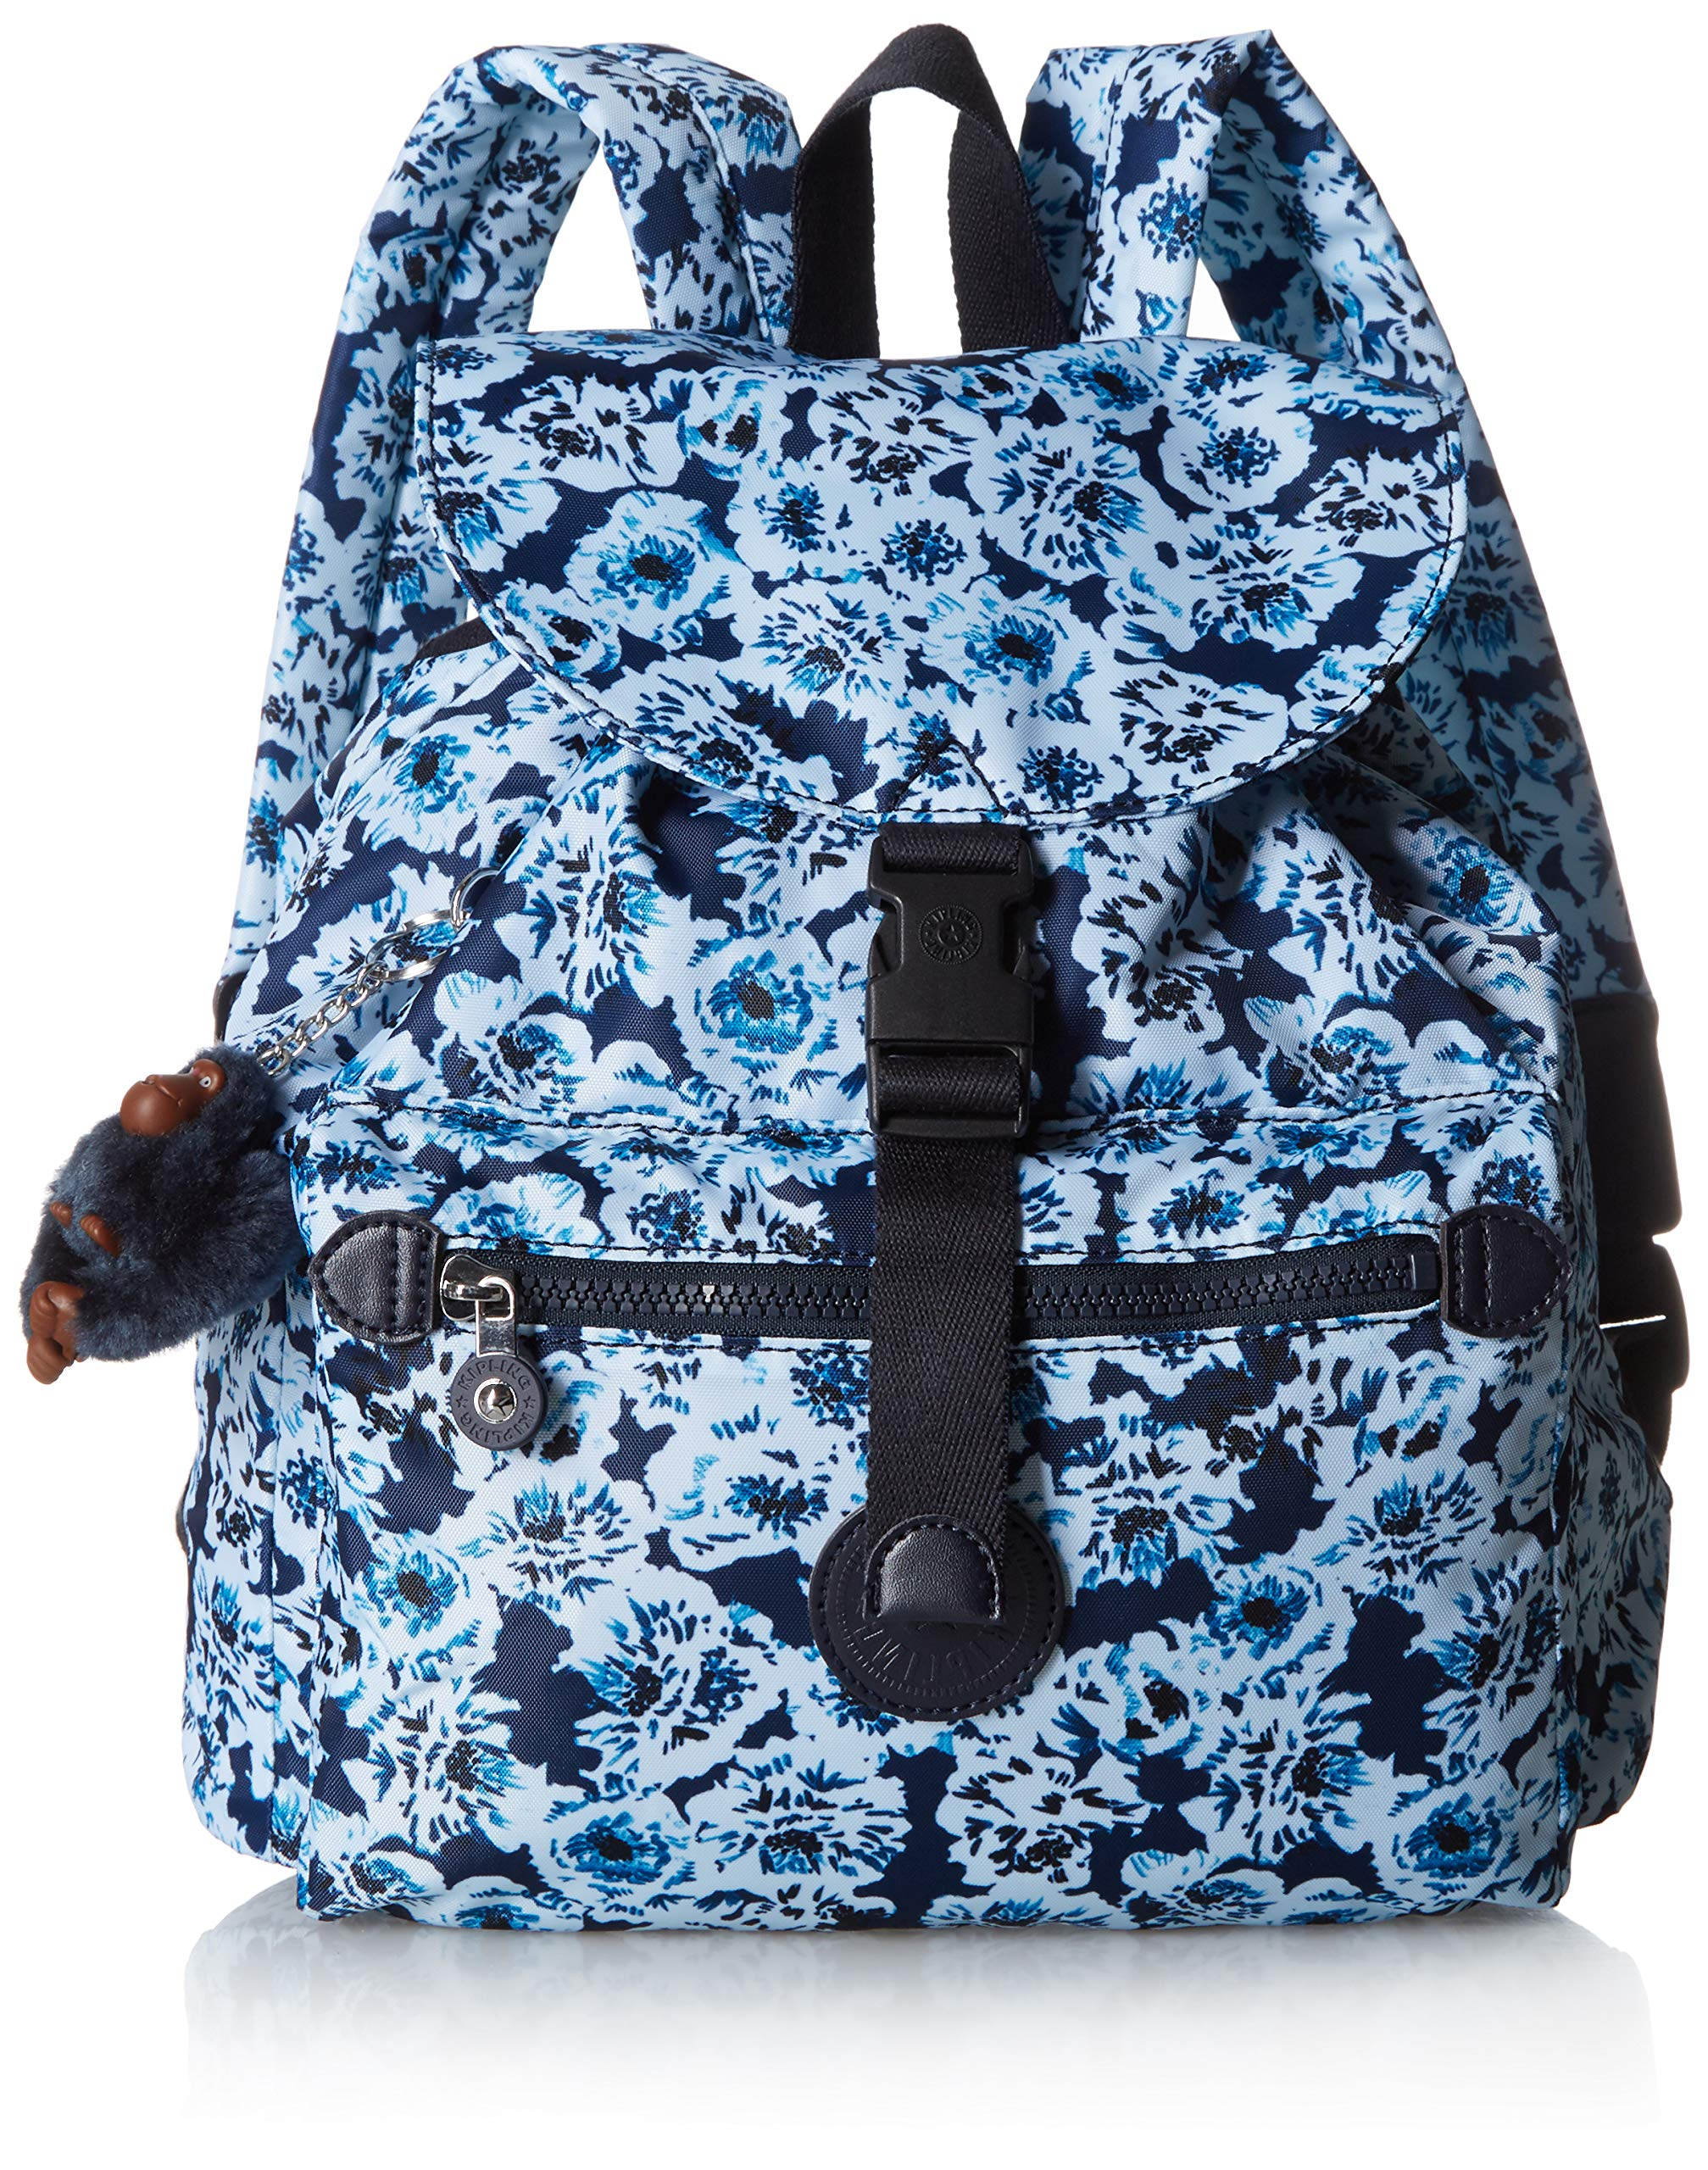 Kipling Keeper Small, Padded, Adjustable Backpack Straps, Drawstring Closure, roaming roses